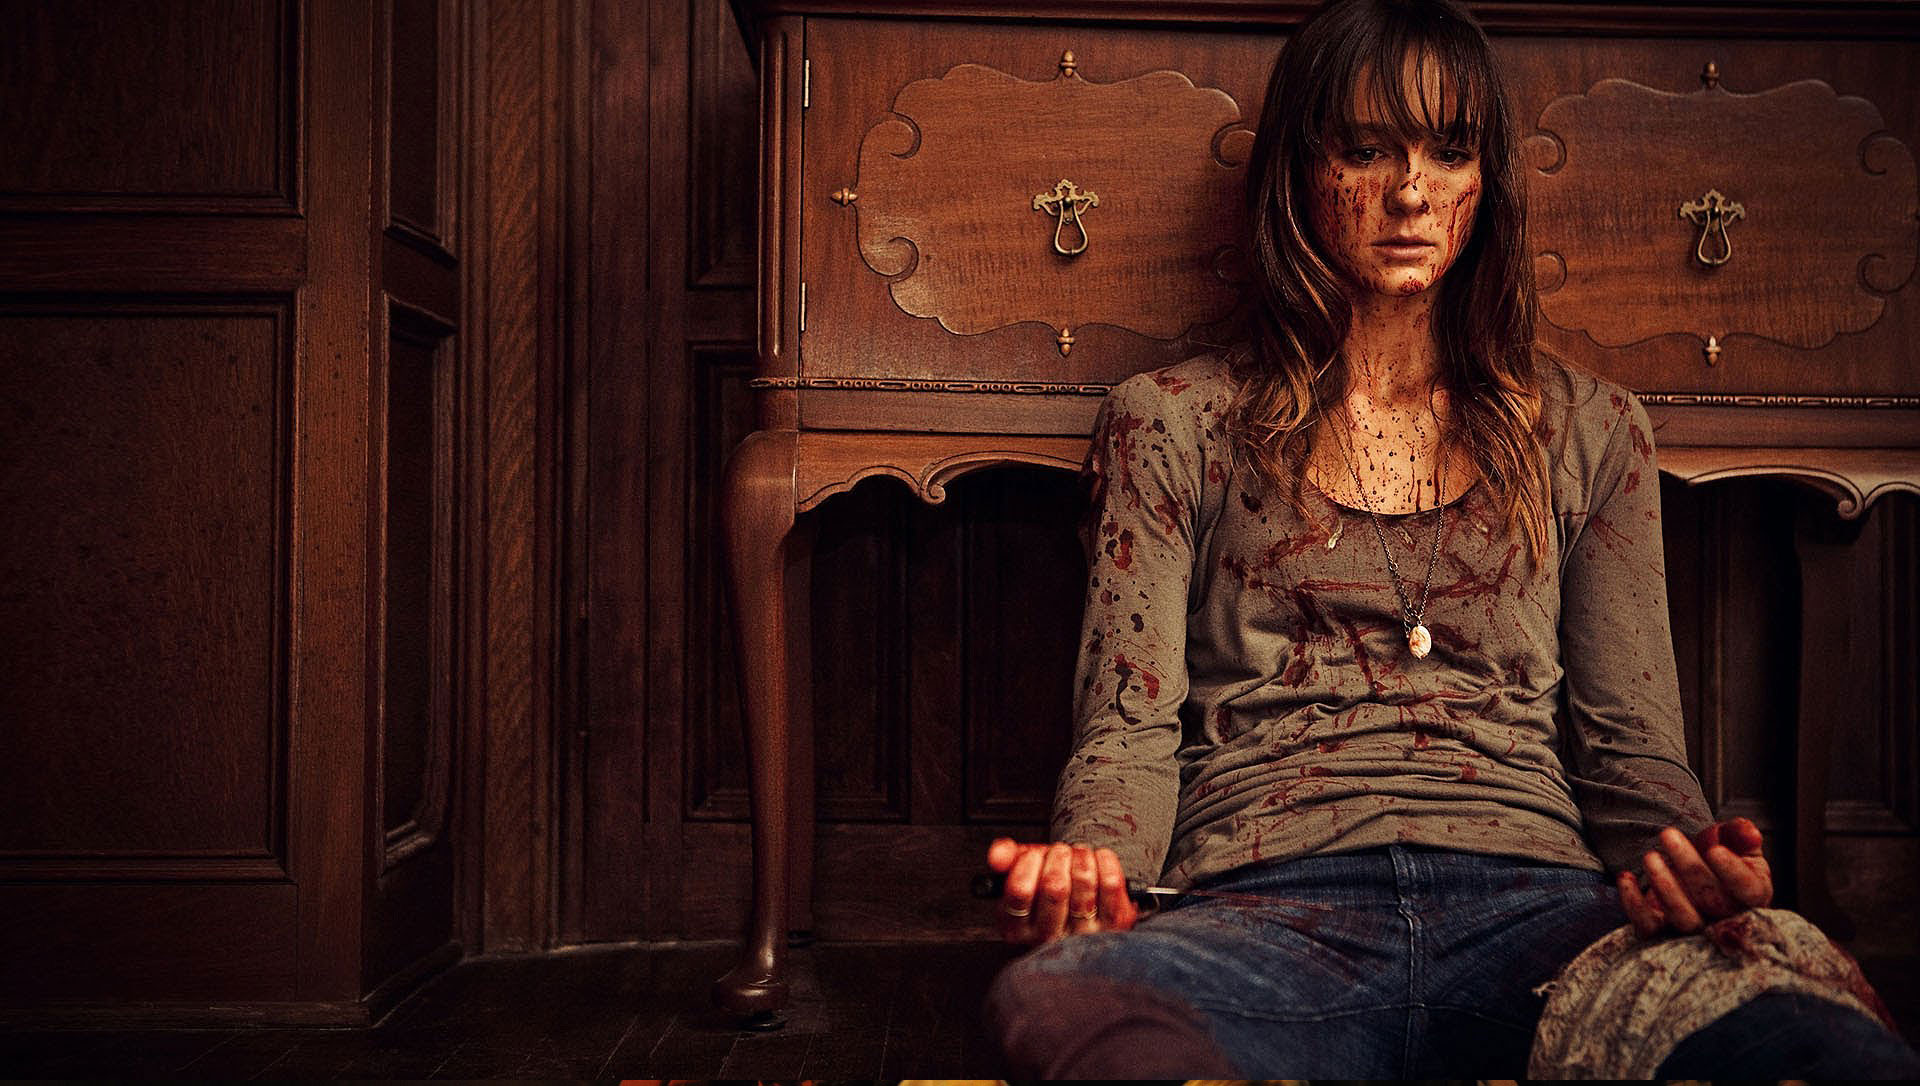 How Horror Films Are Bringing More Gender Equality to Hollywood